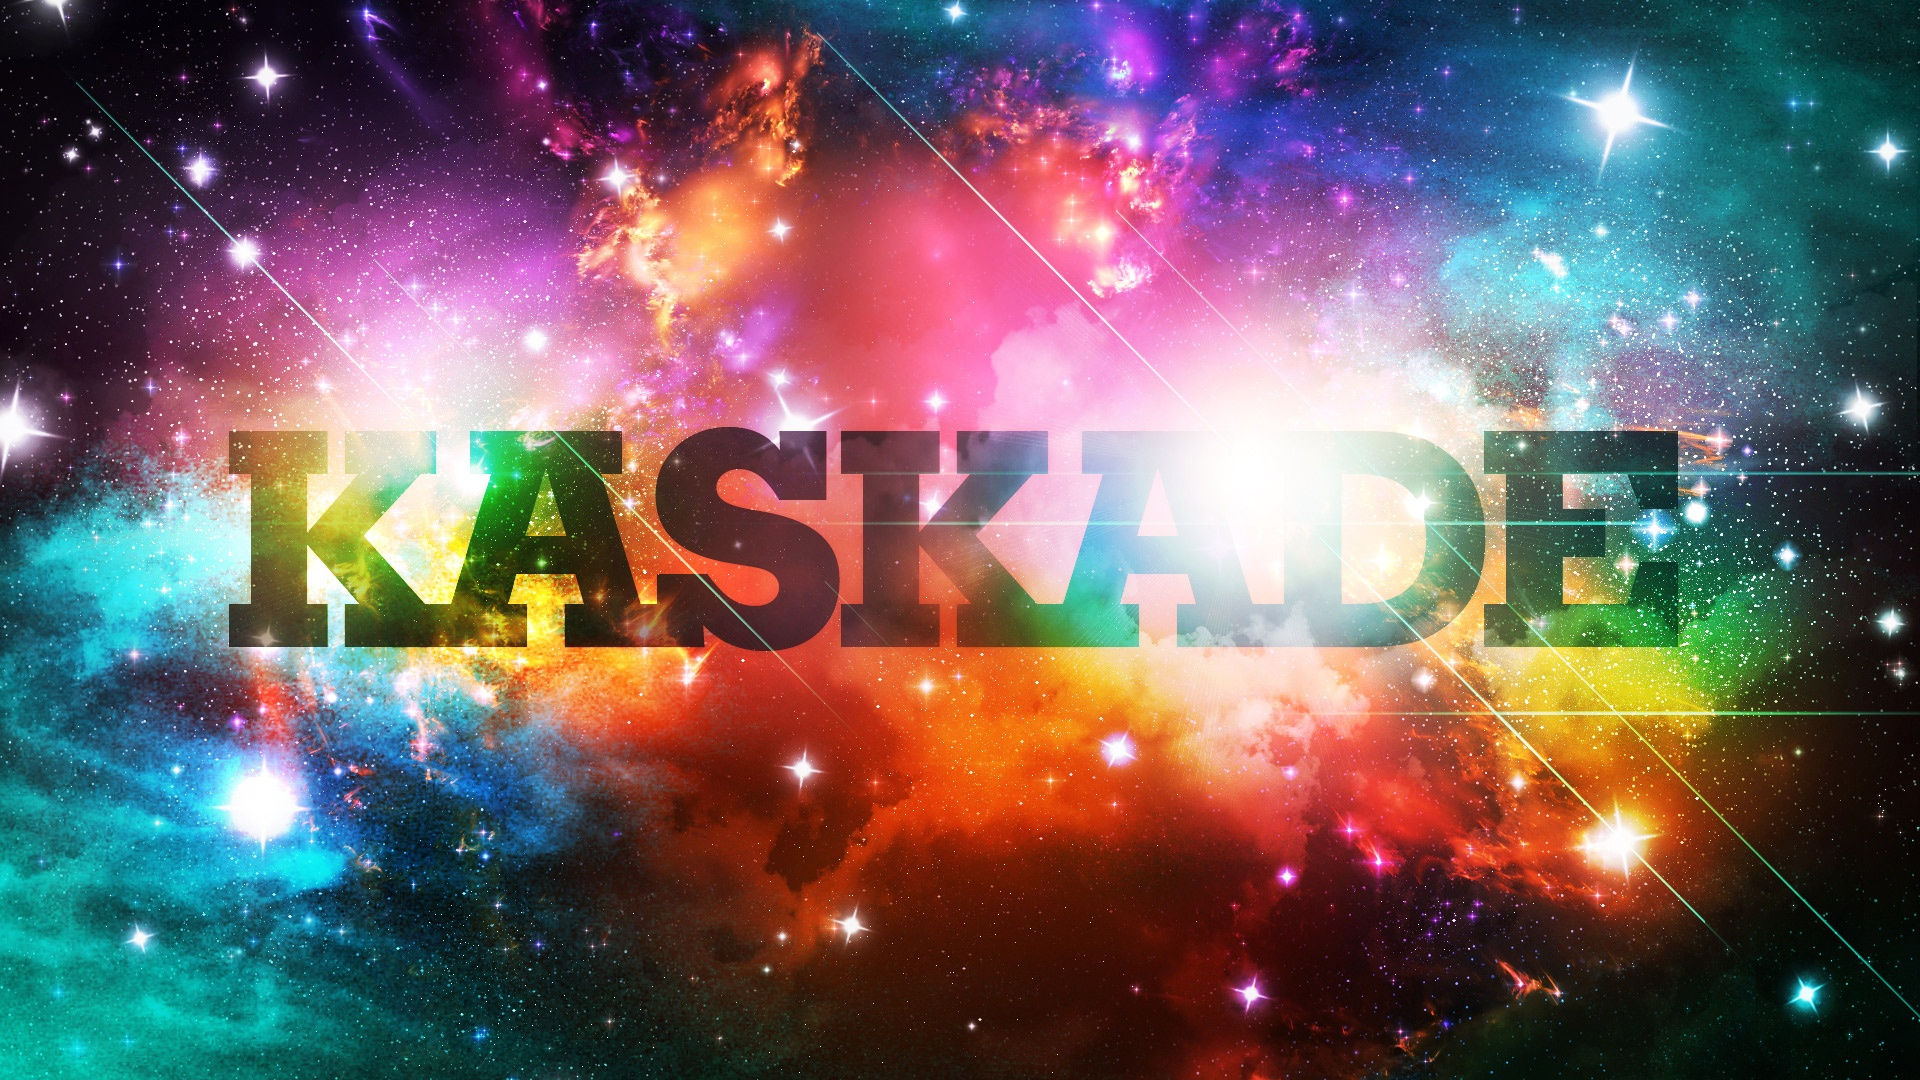 Kaskade HD and Wide Wallpapers